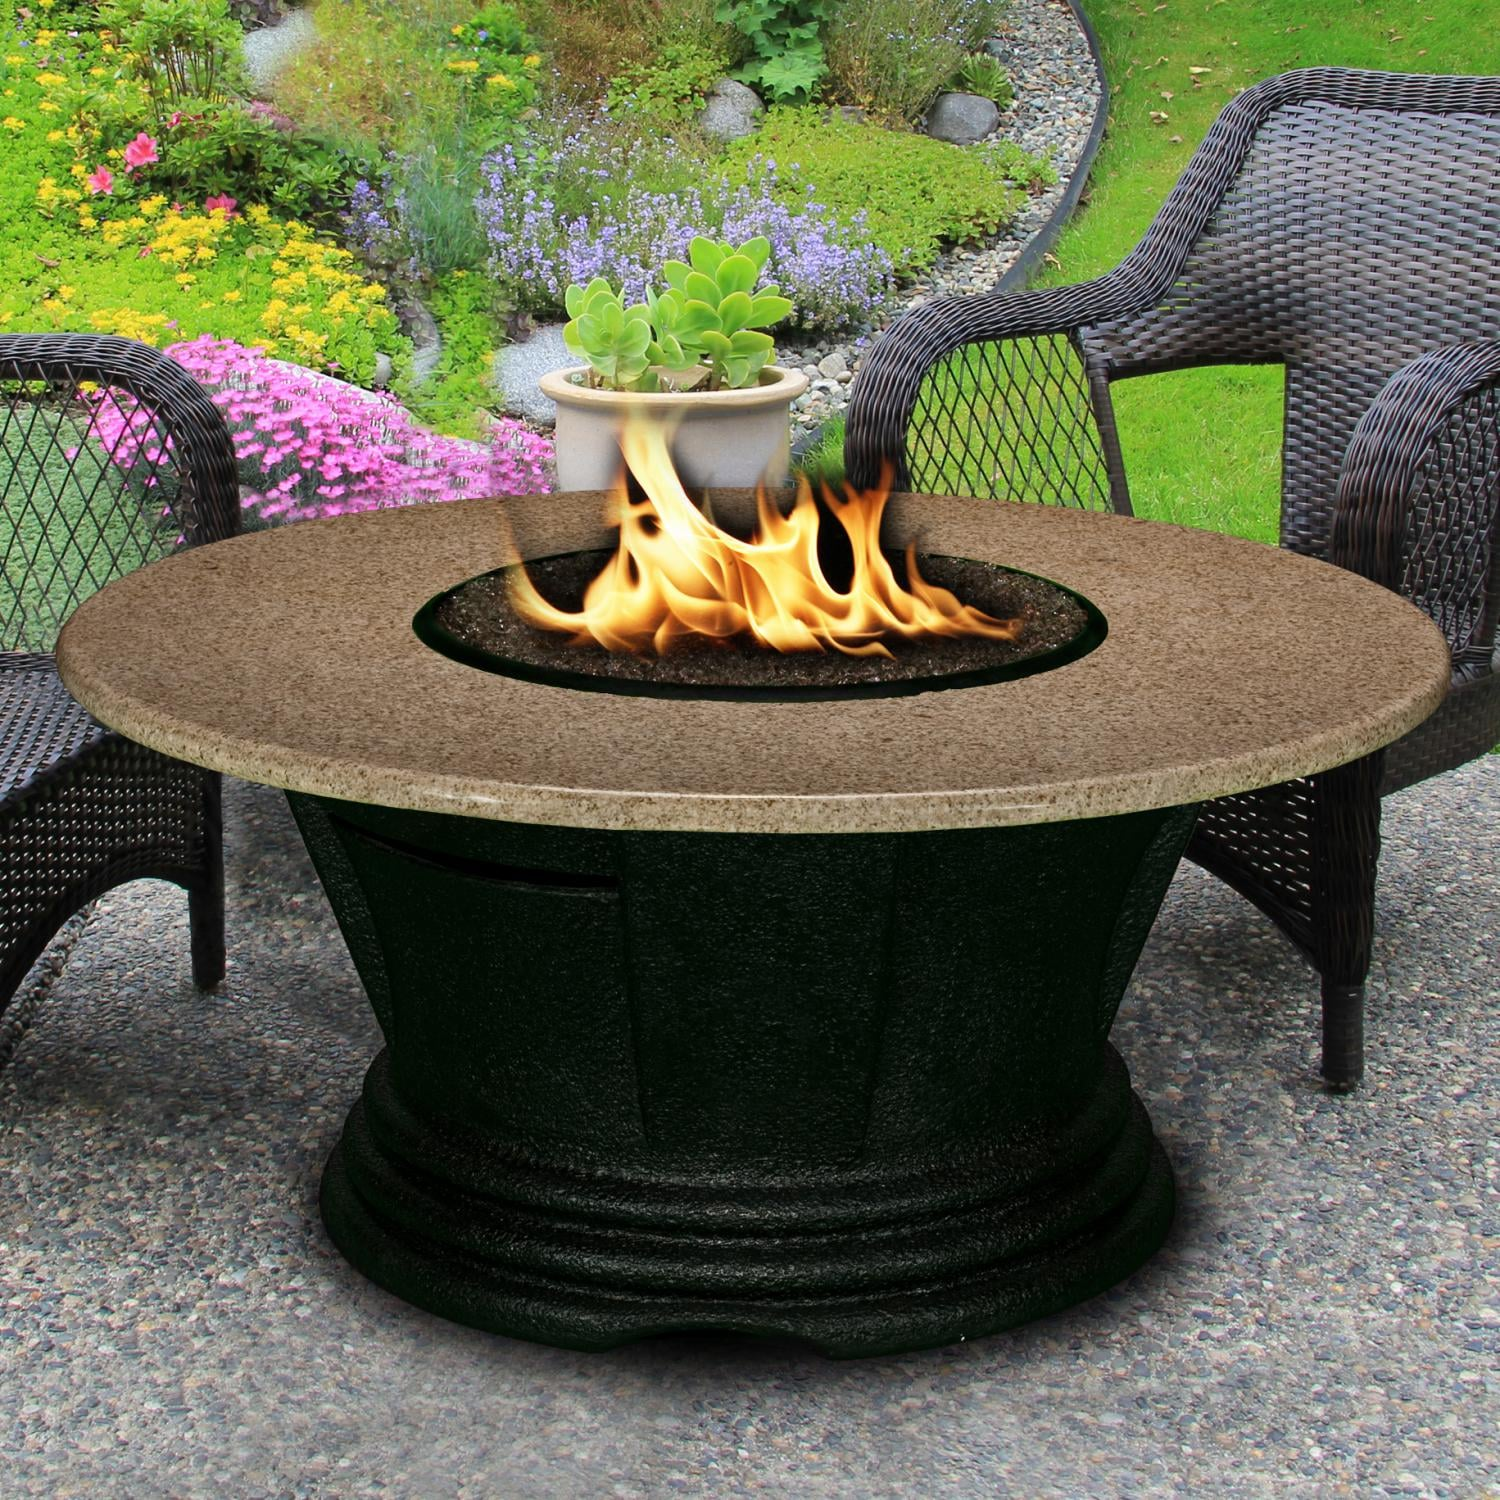 San Simeon 48 Inch Propane Fire Pit Table By California Outdoor Concepts